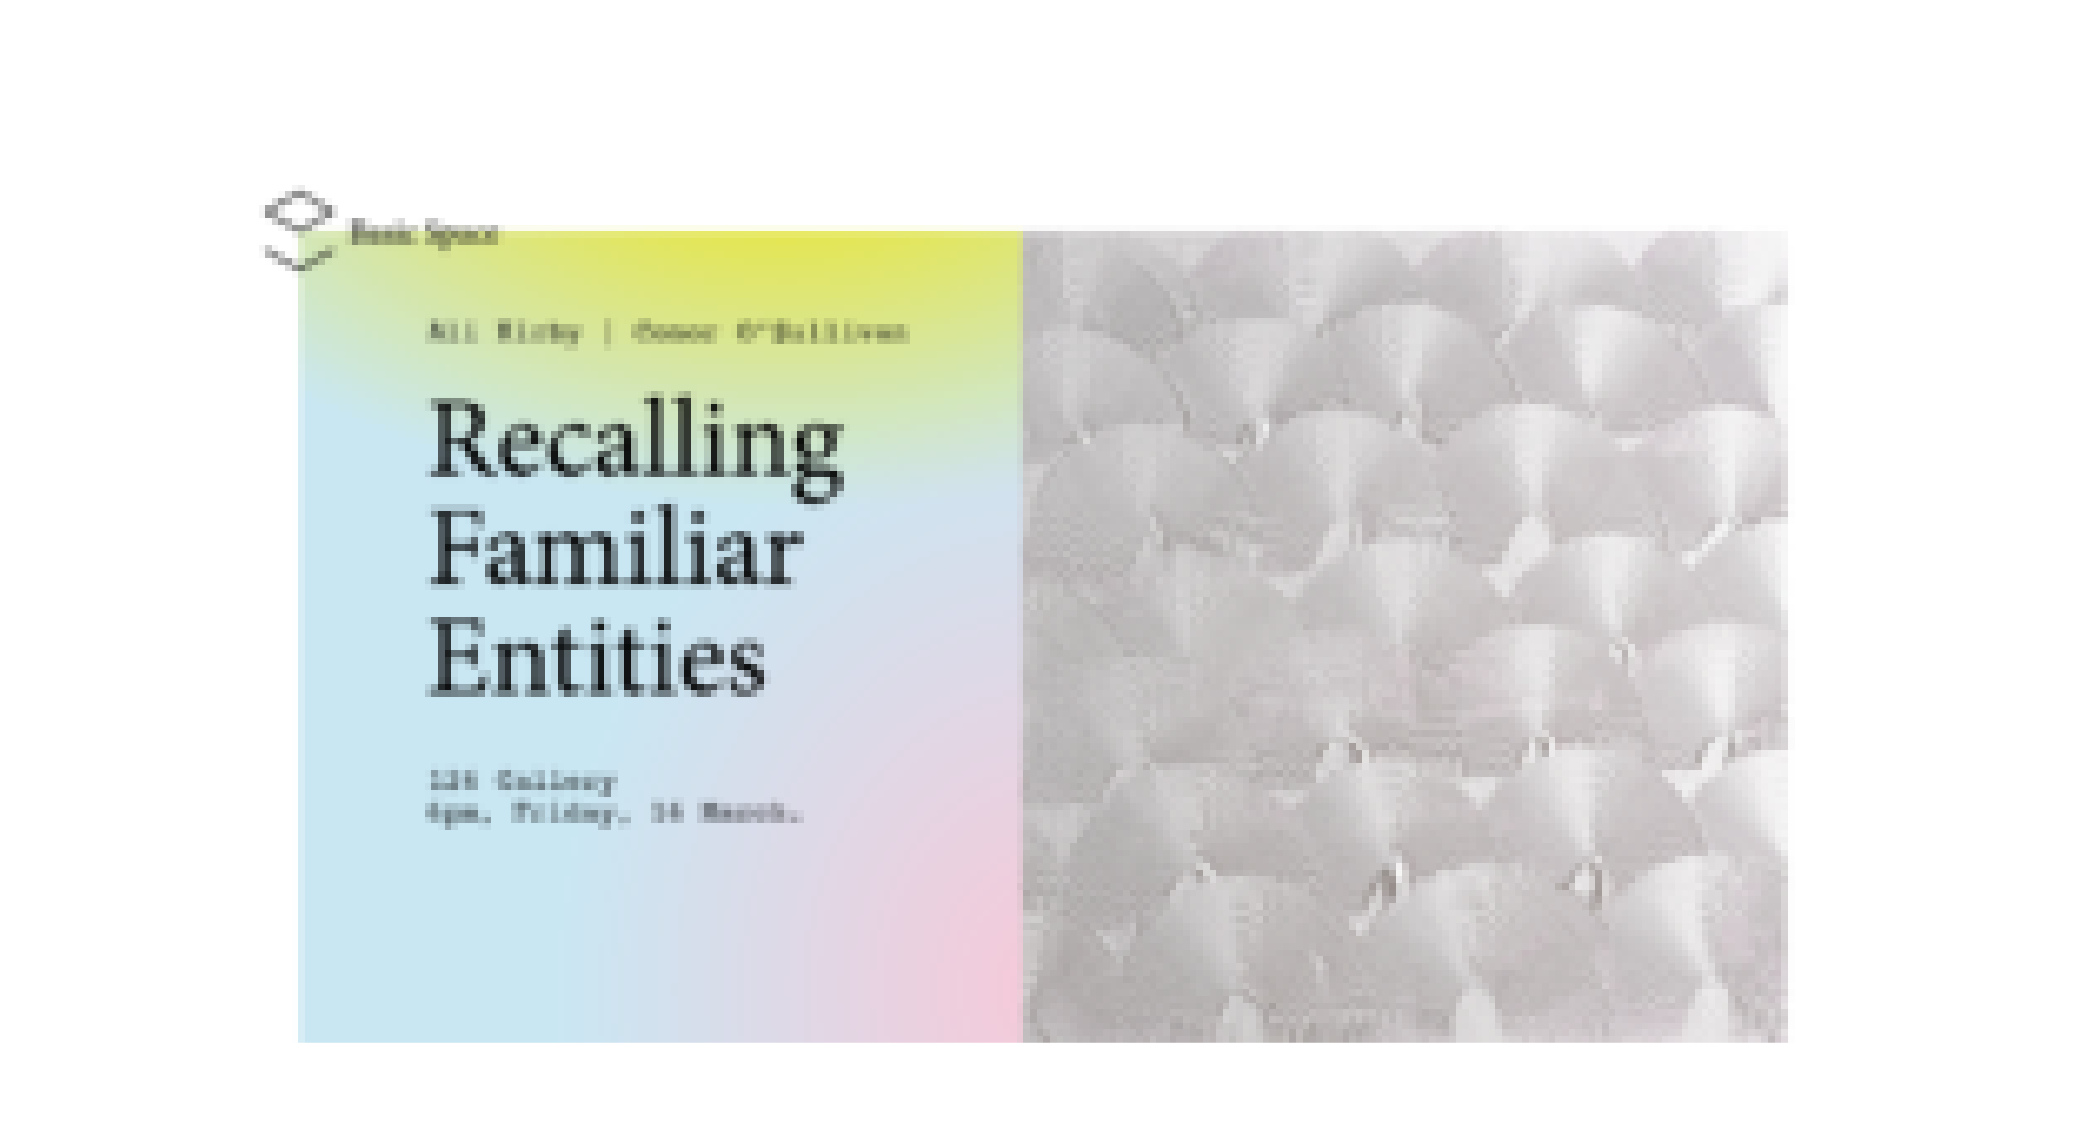 Recalling Familiar Entities | Ali Kirby & Conor O'Sullivan at 126 Gallery, Galway